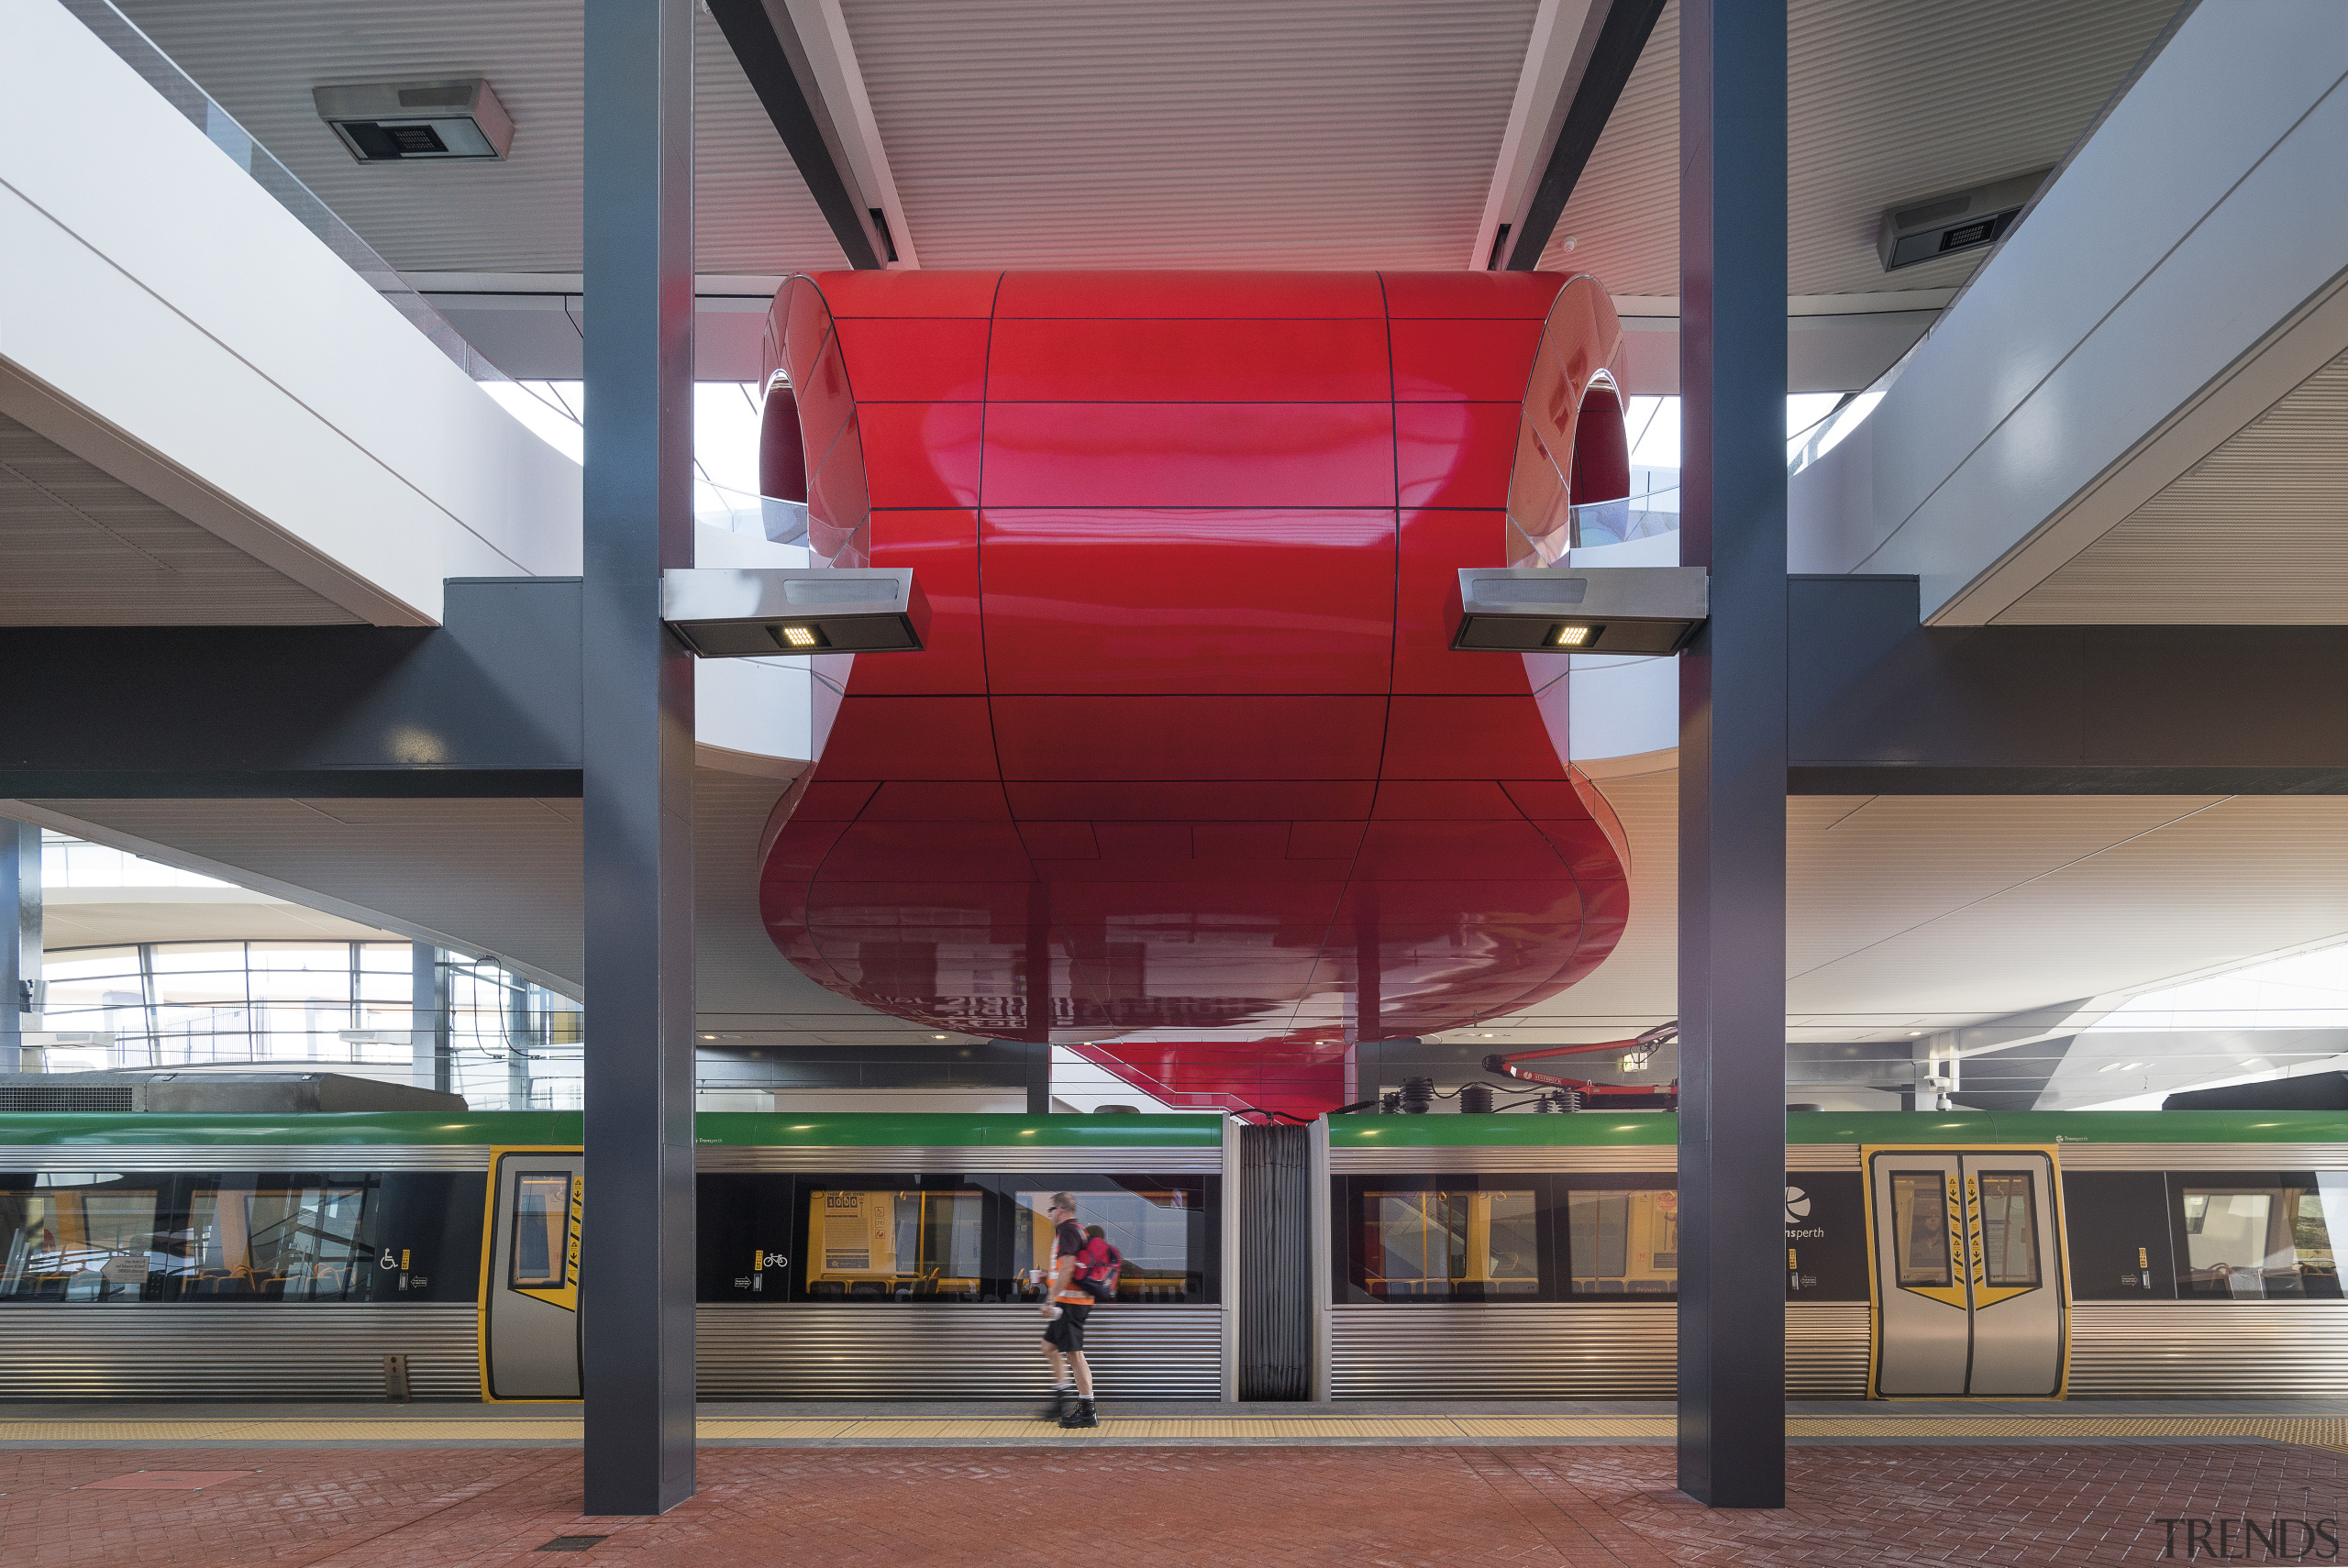 This curved red canopy in the new Butler architecture, daylighting, metropolitan area, structure, gray